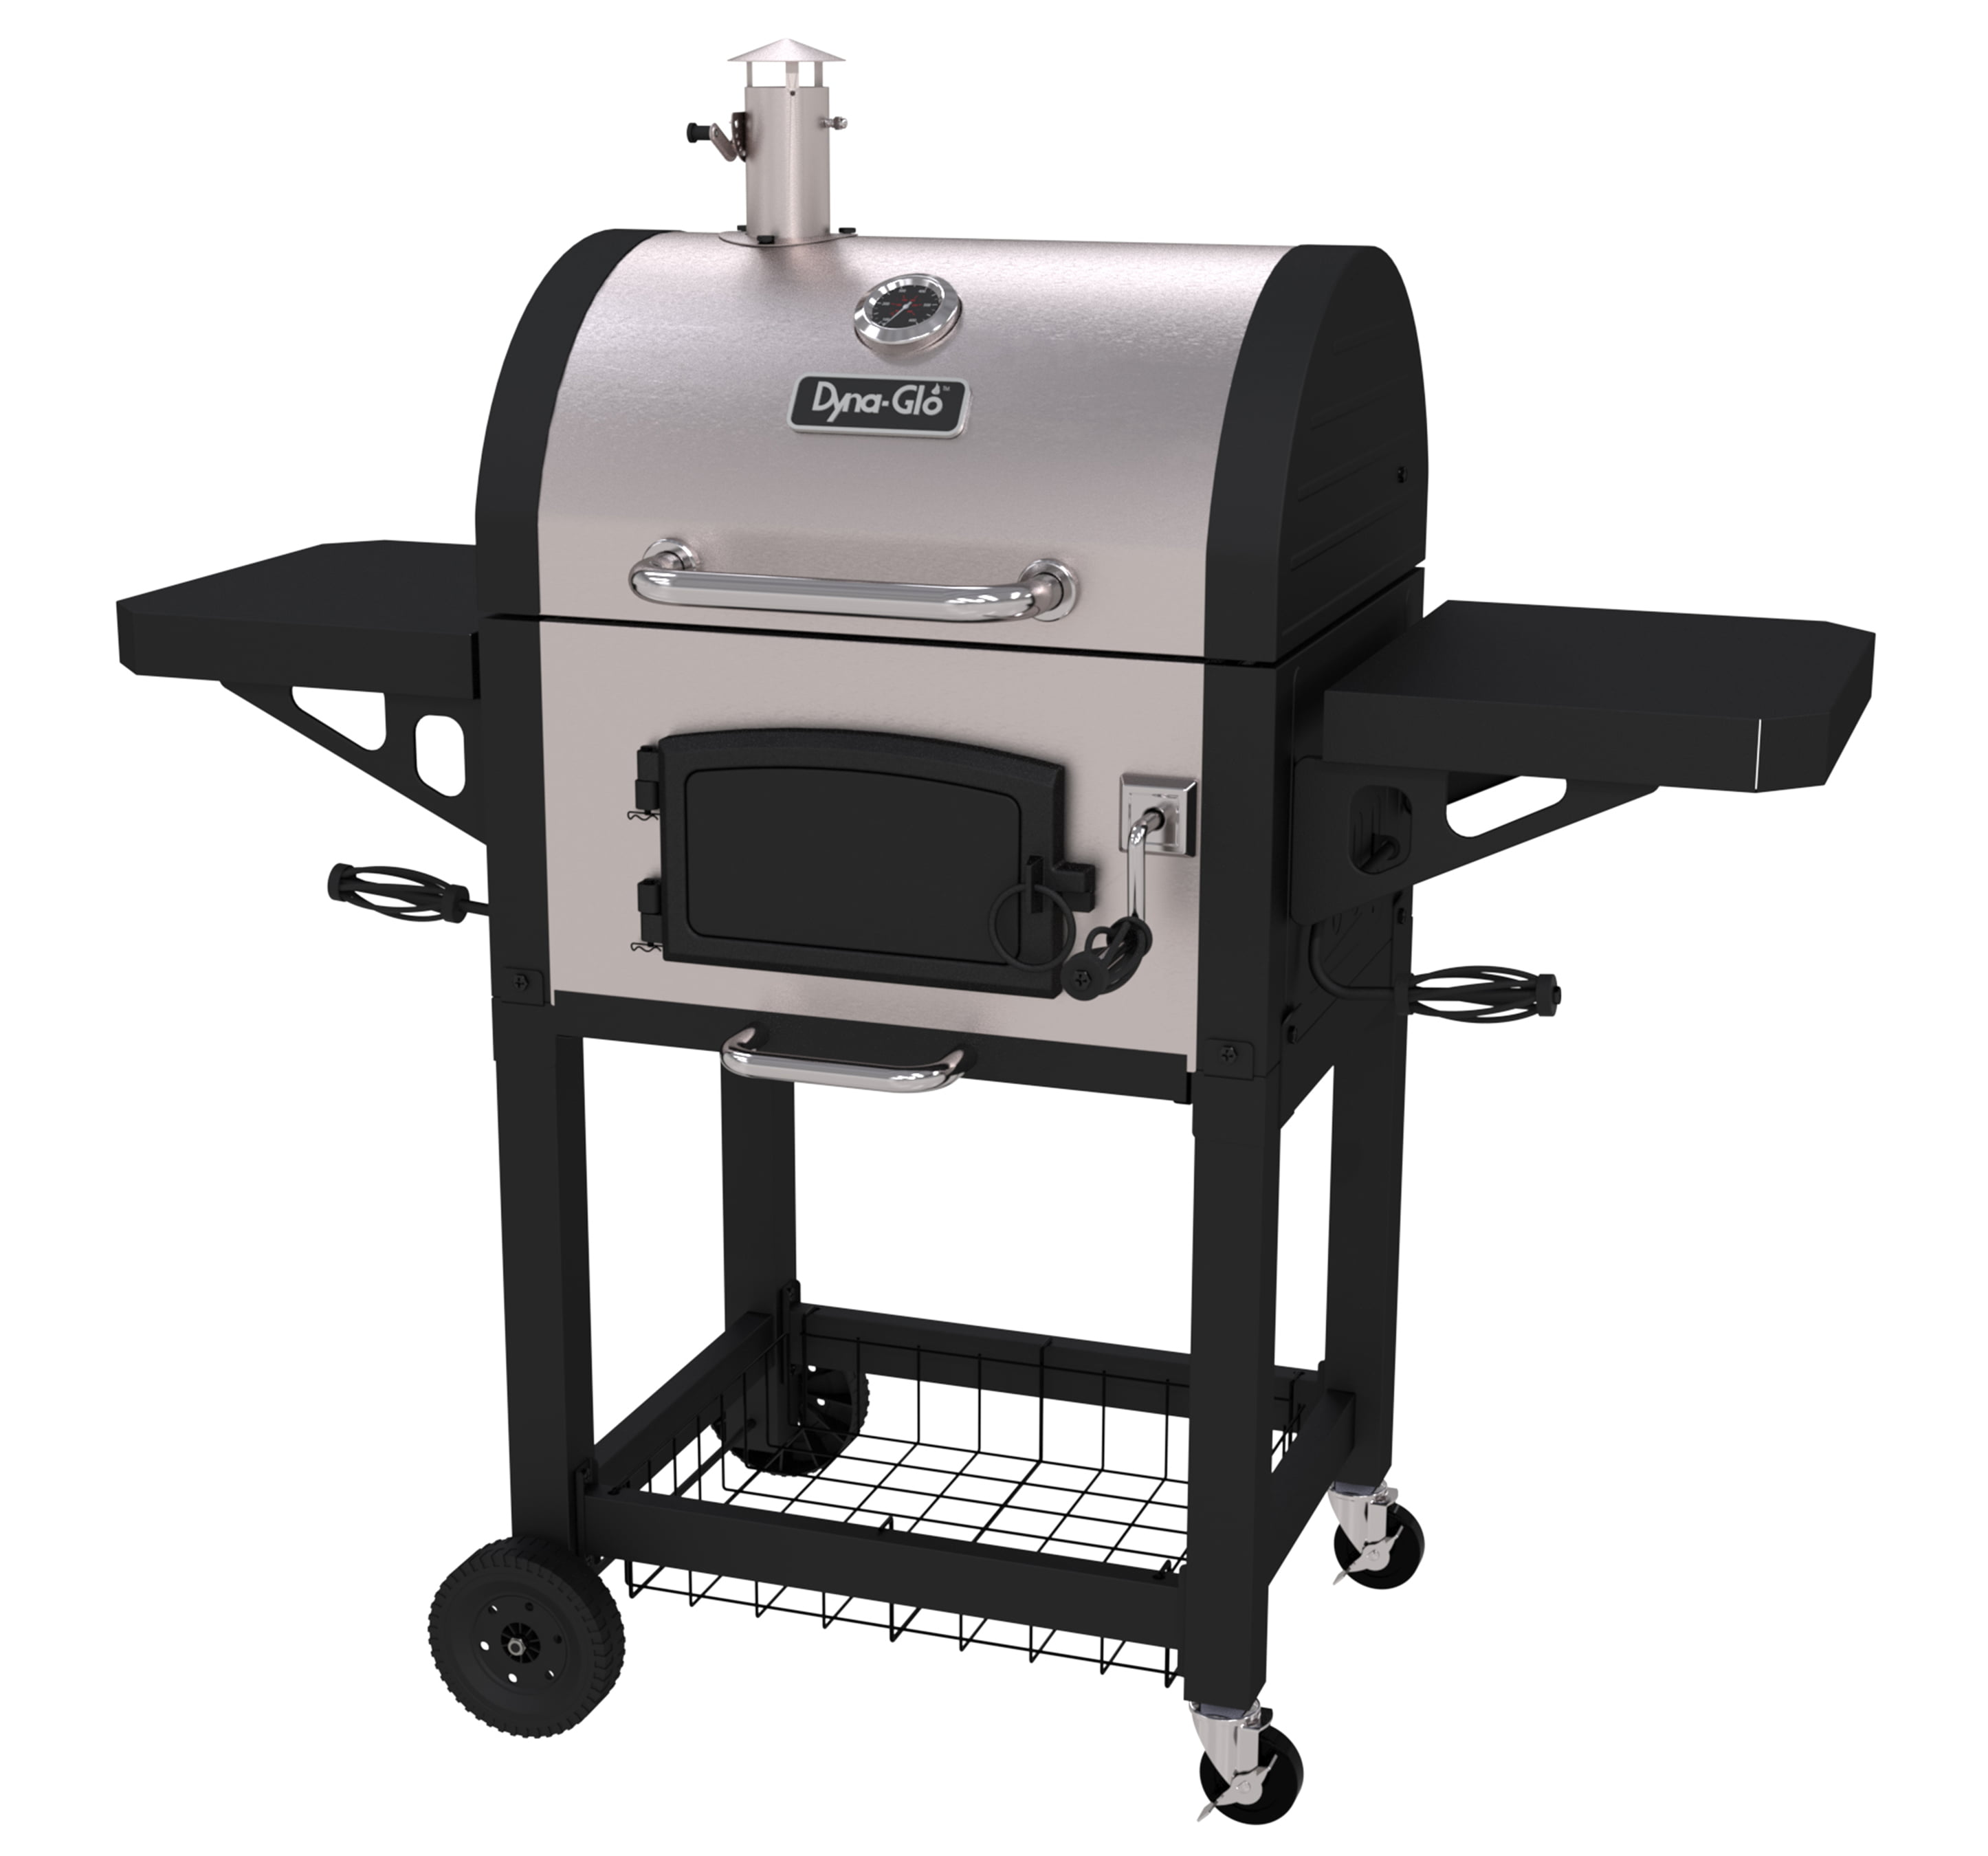 Dyna-Glo DGN405SNC-D Heavy-Duty Compact Charcoal Grill by GHP Group, Inc.